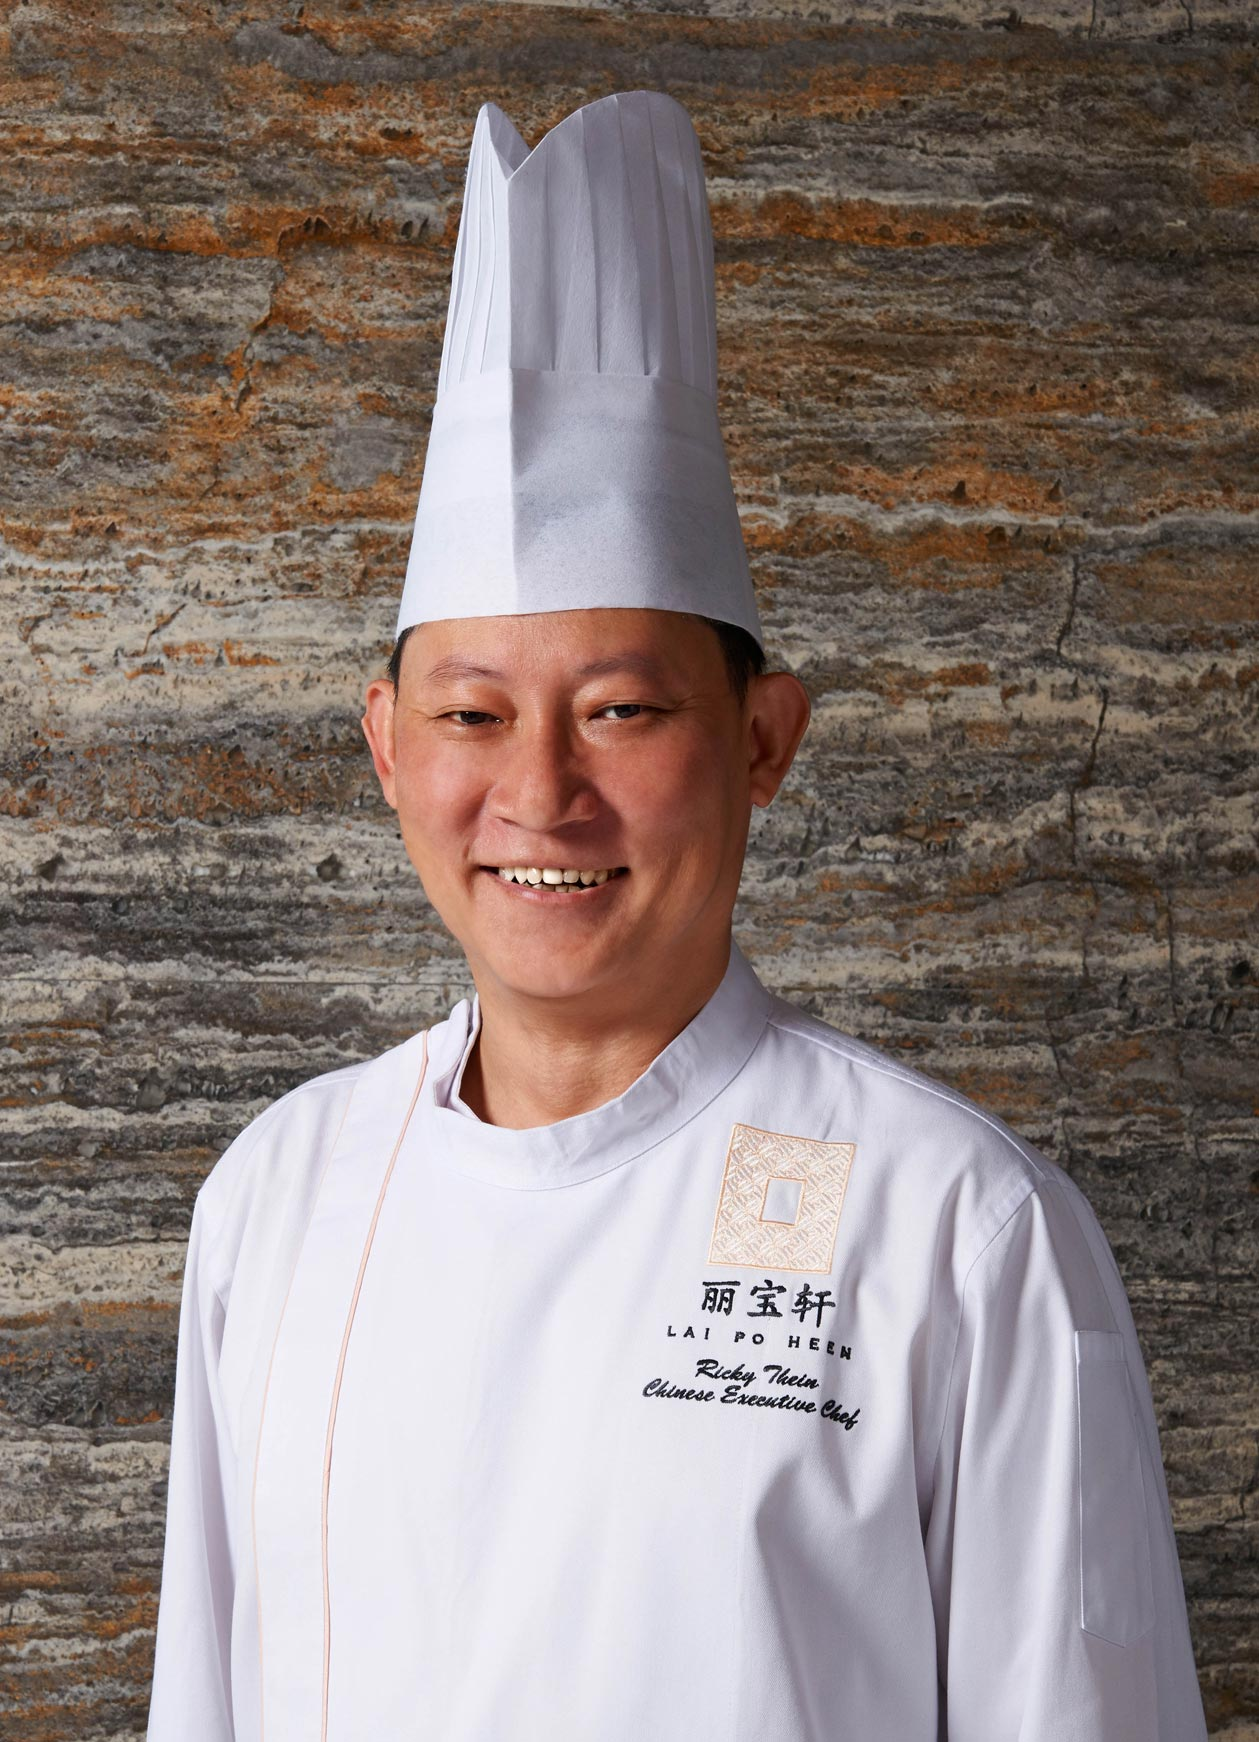 Lai Po Heen's executive chef Ricky Thein